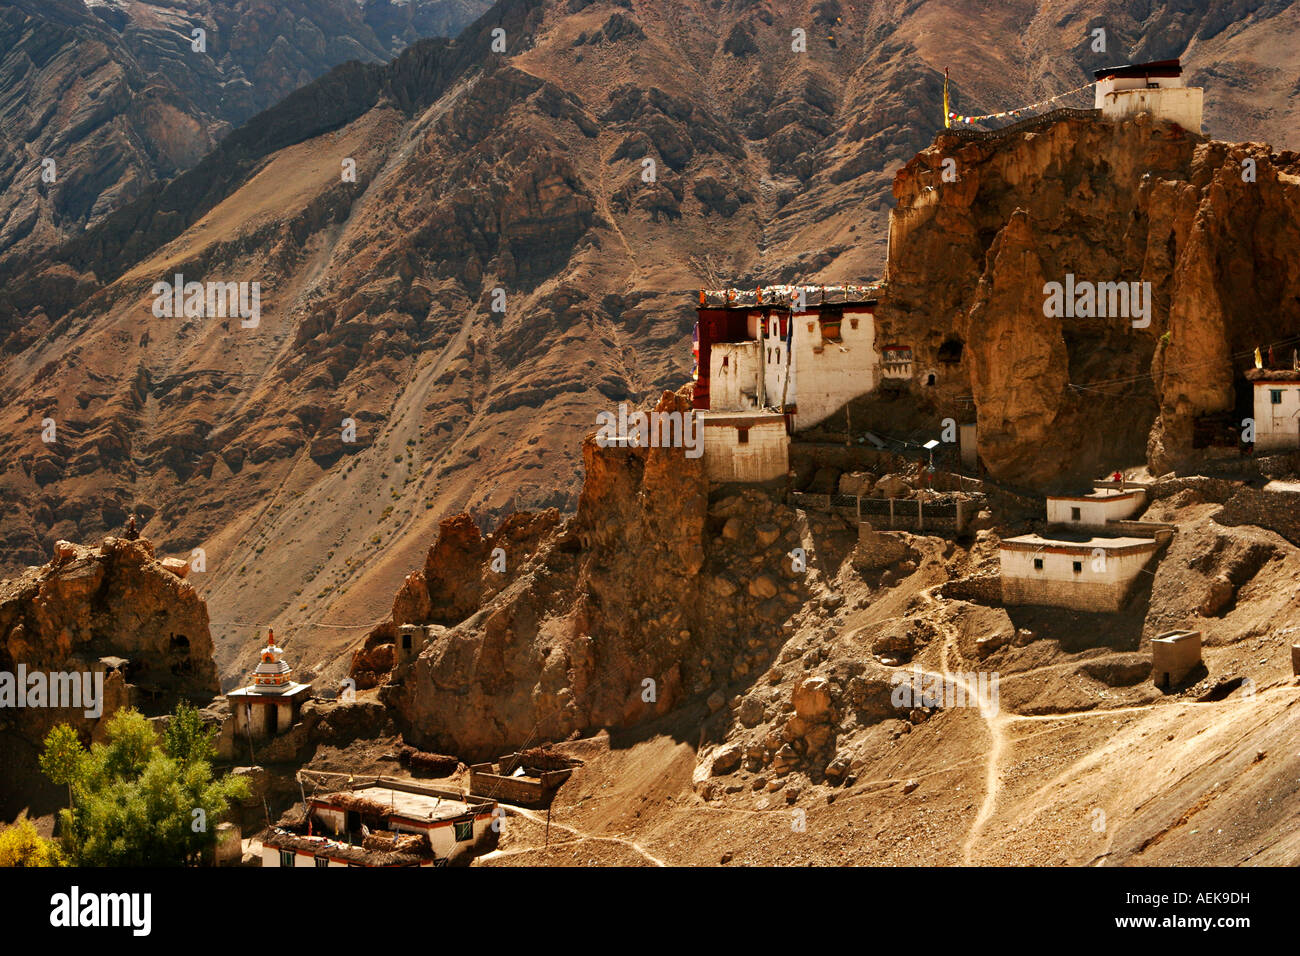 View of Dhankar Castle and gompa situated on the edge of hill in Spiti Valley, Himachal Pradesh India - Stock Image